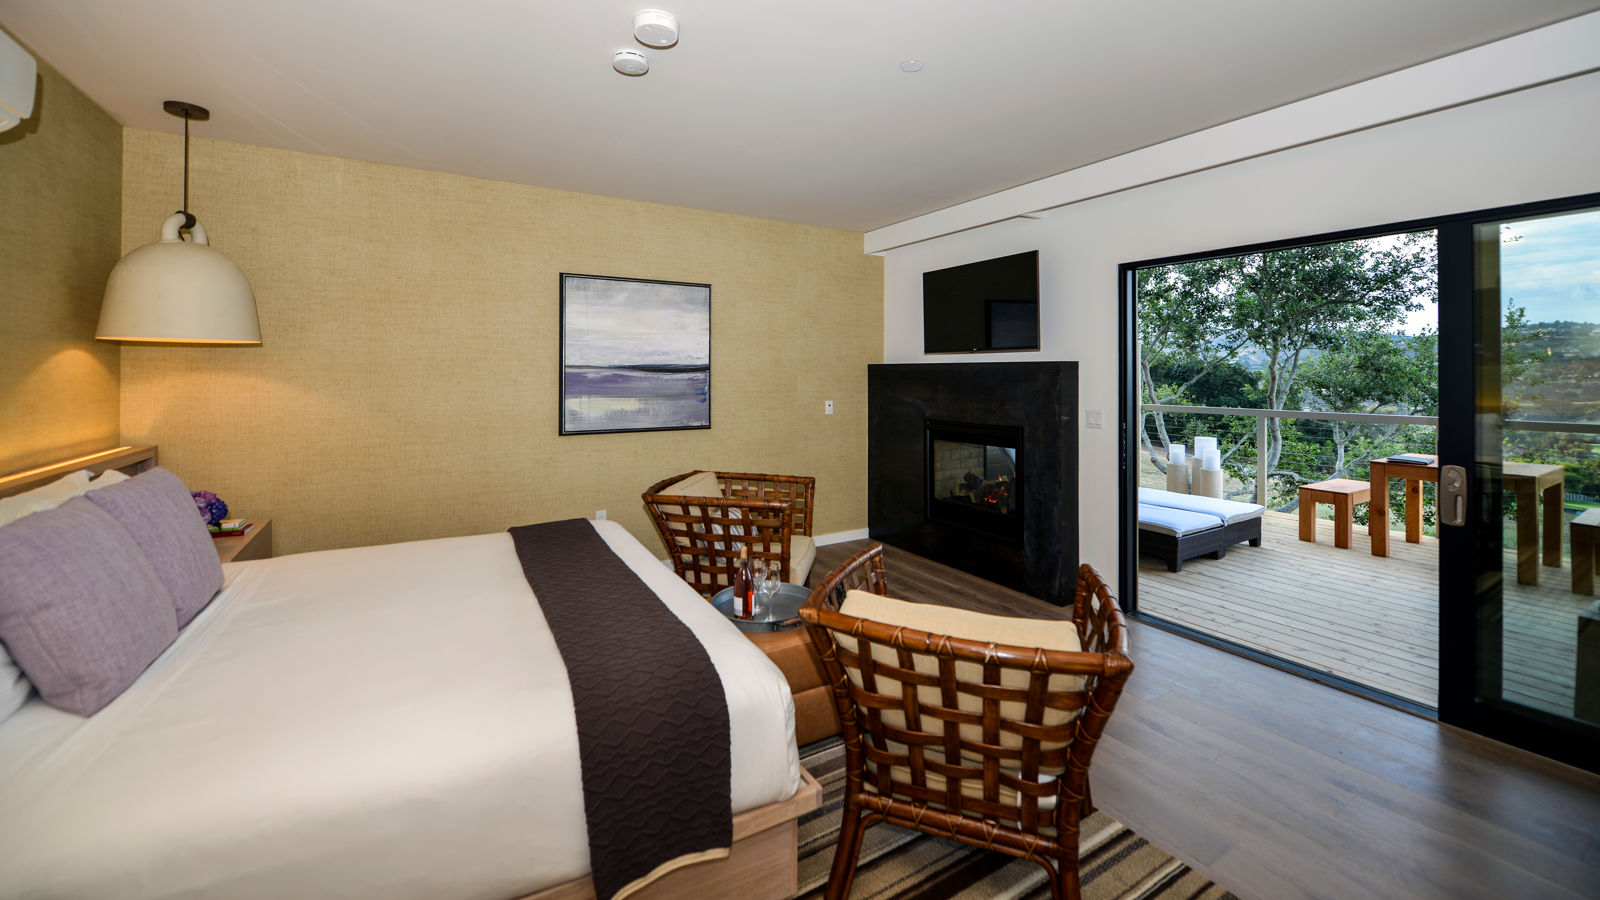 Carmel Valley Ranch_Accommodations_Vineyard Oak Studio_BR view